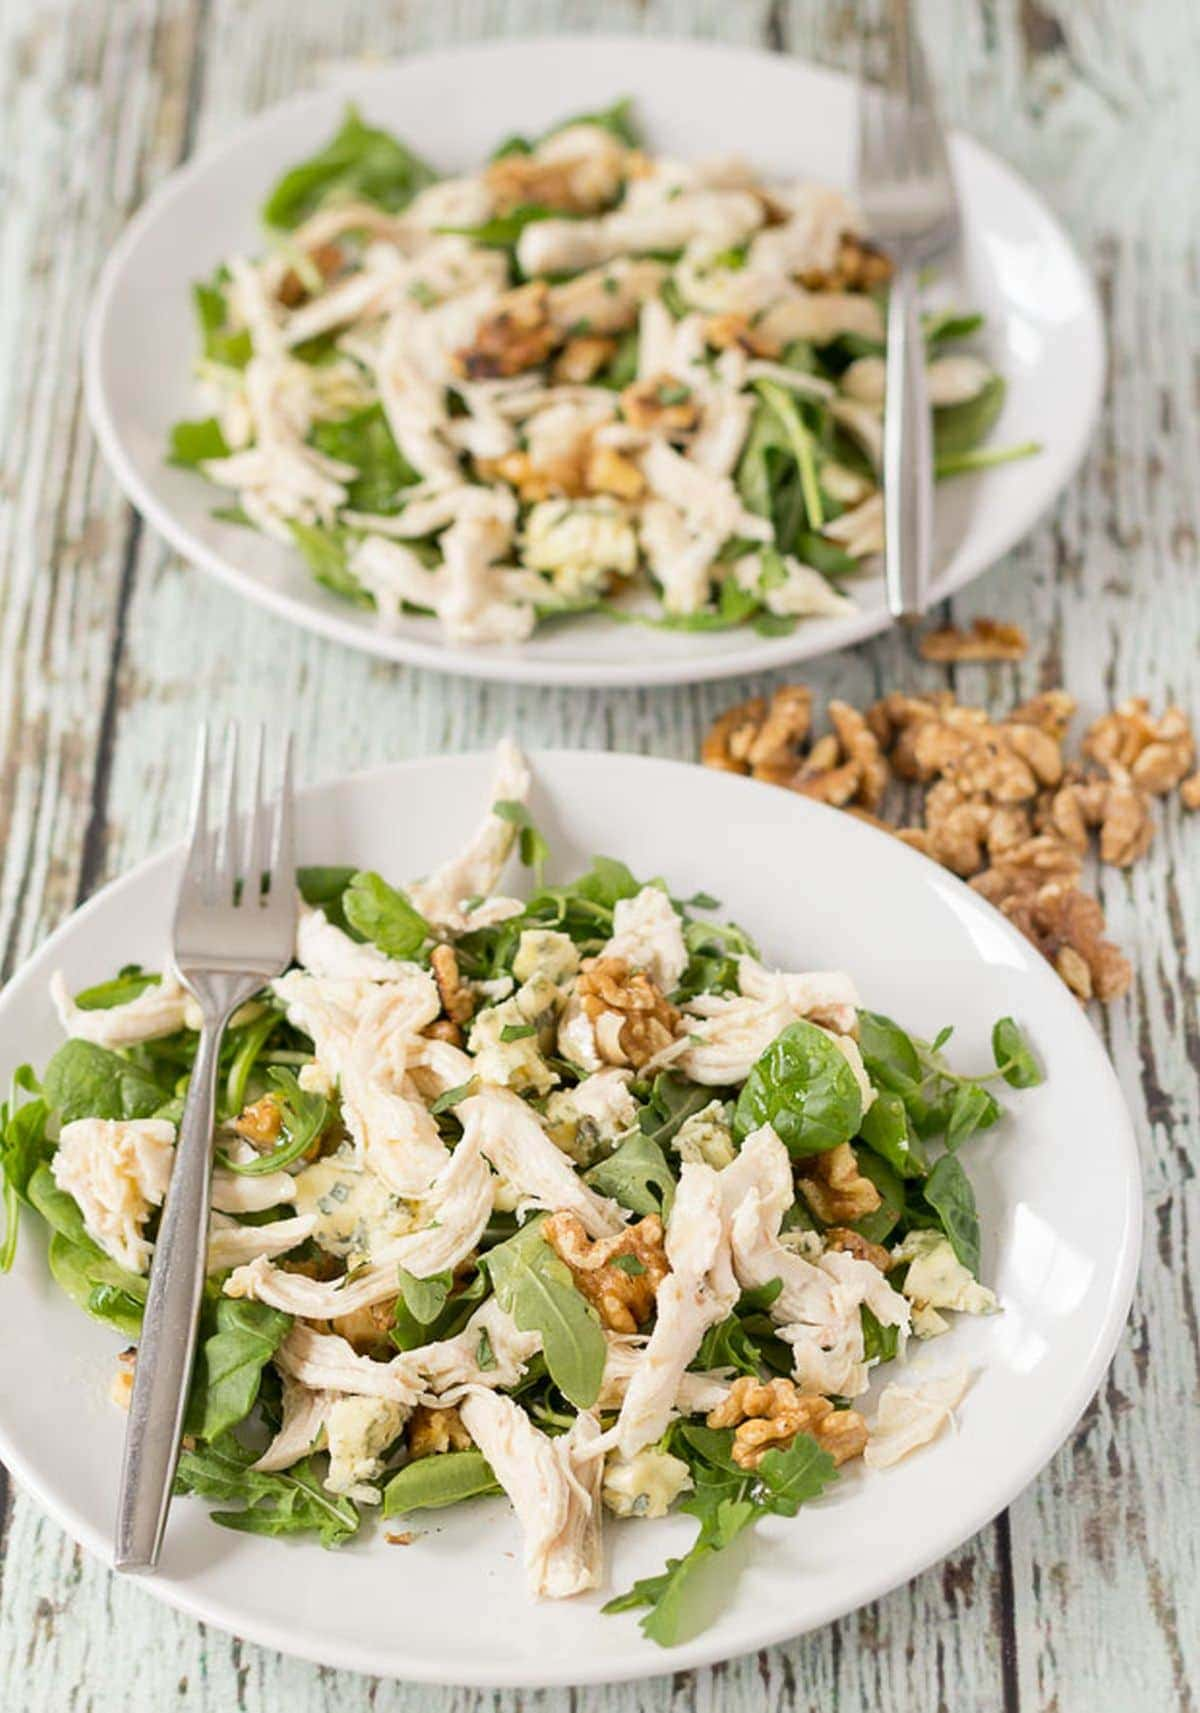 Two plates of chicken walnut and blue cheese salad one in front of the other with forks on and walnuts for decoration in between.